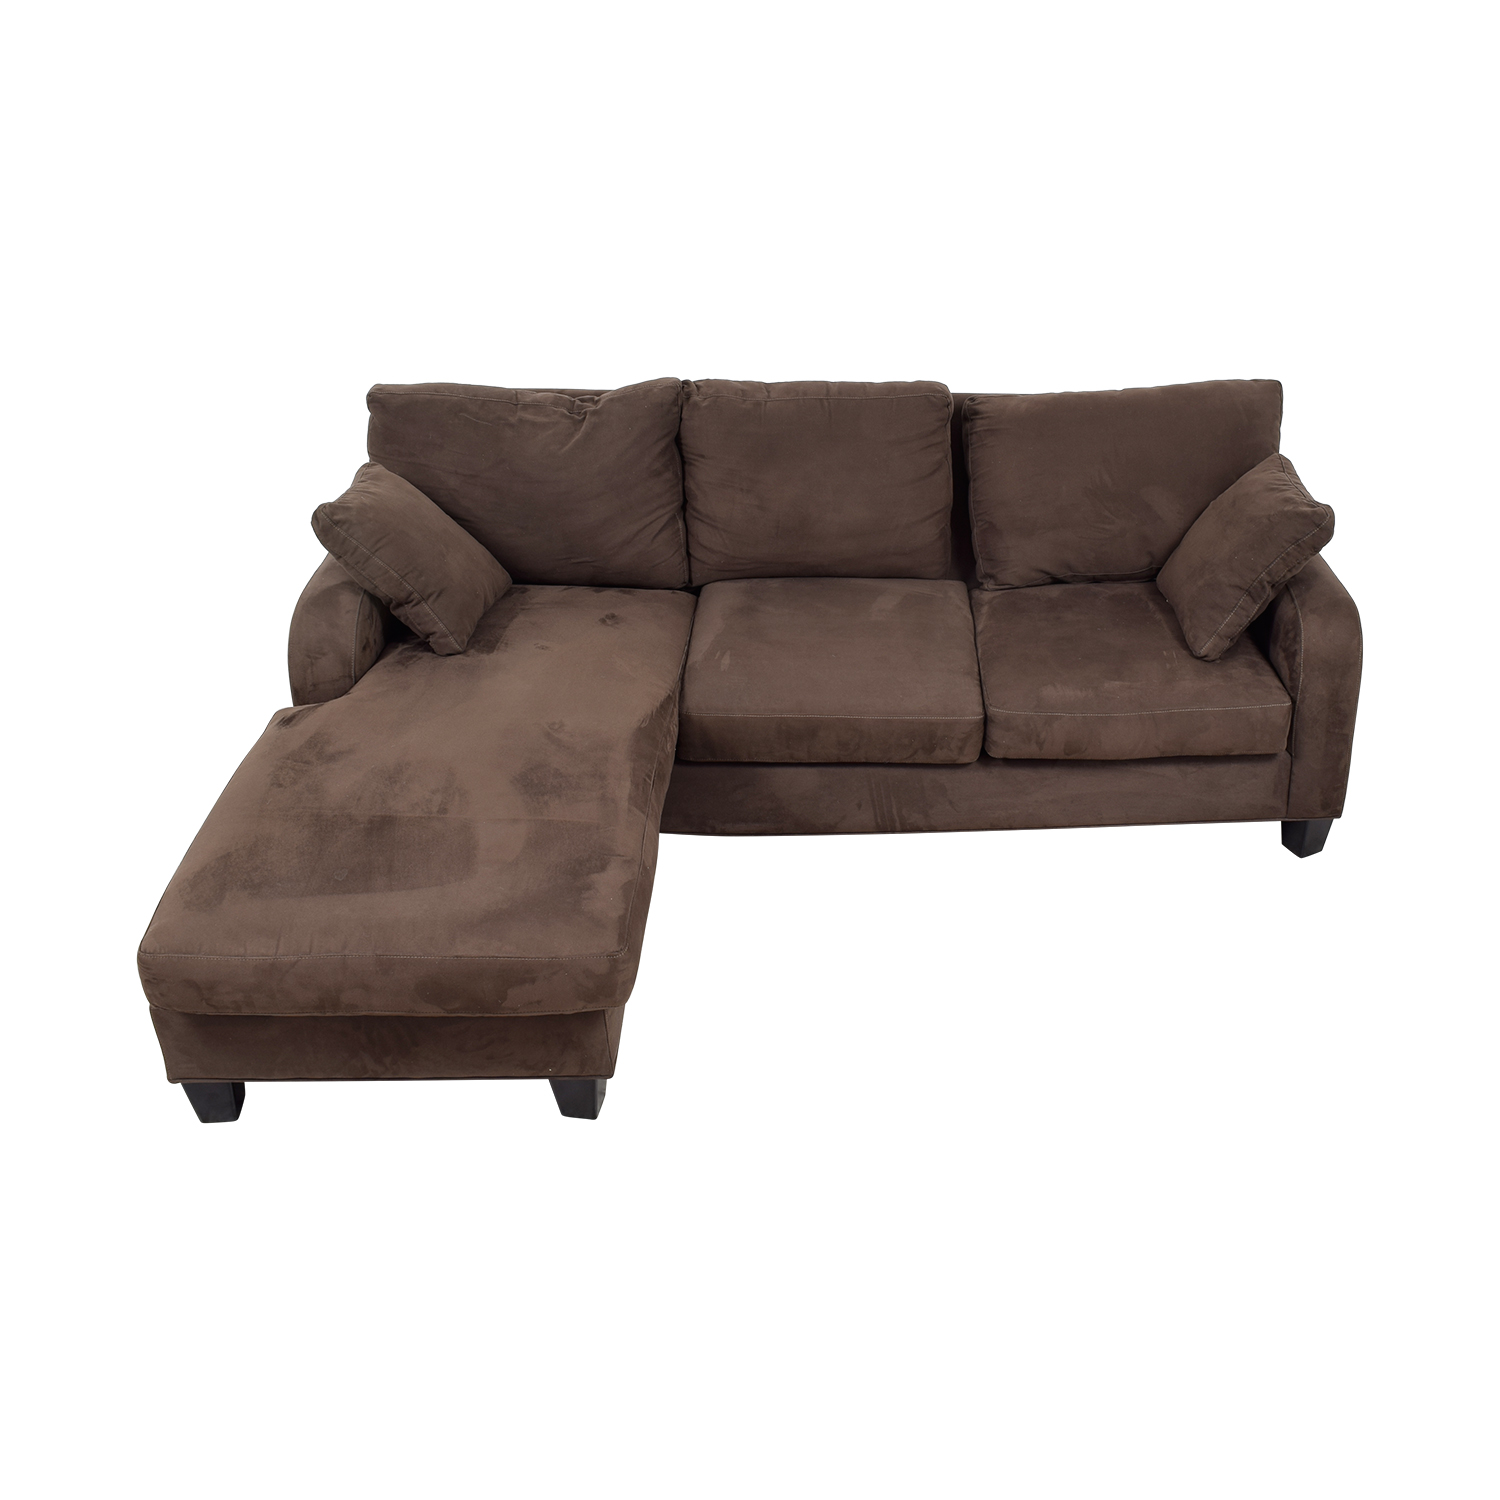 Cindy Crawford Cindy Crawford Brown Chaise Sectional chocolate